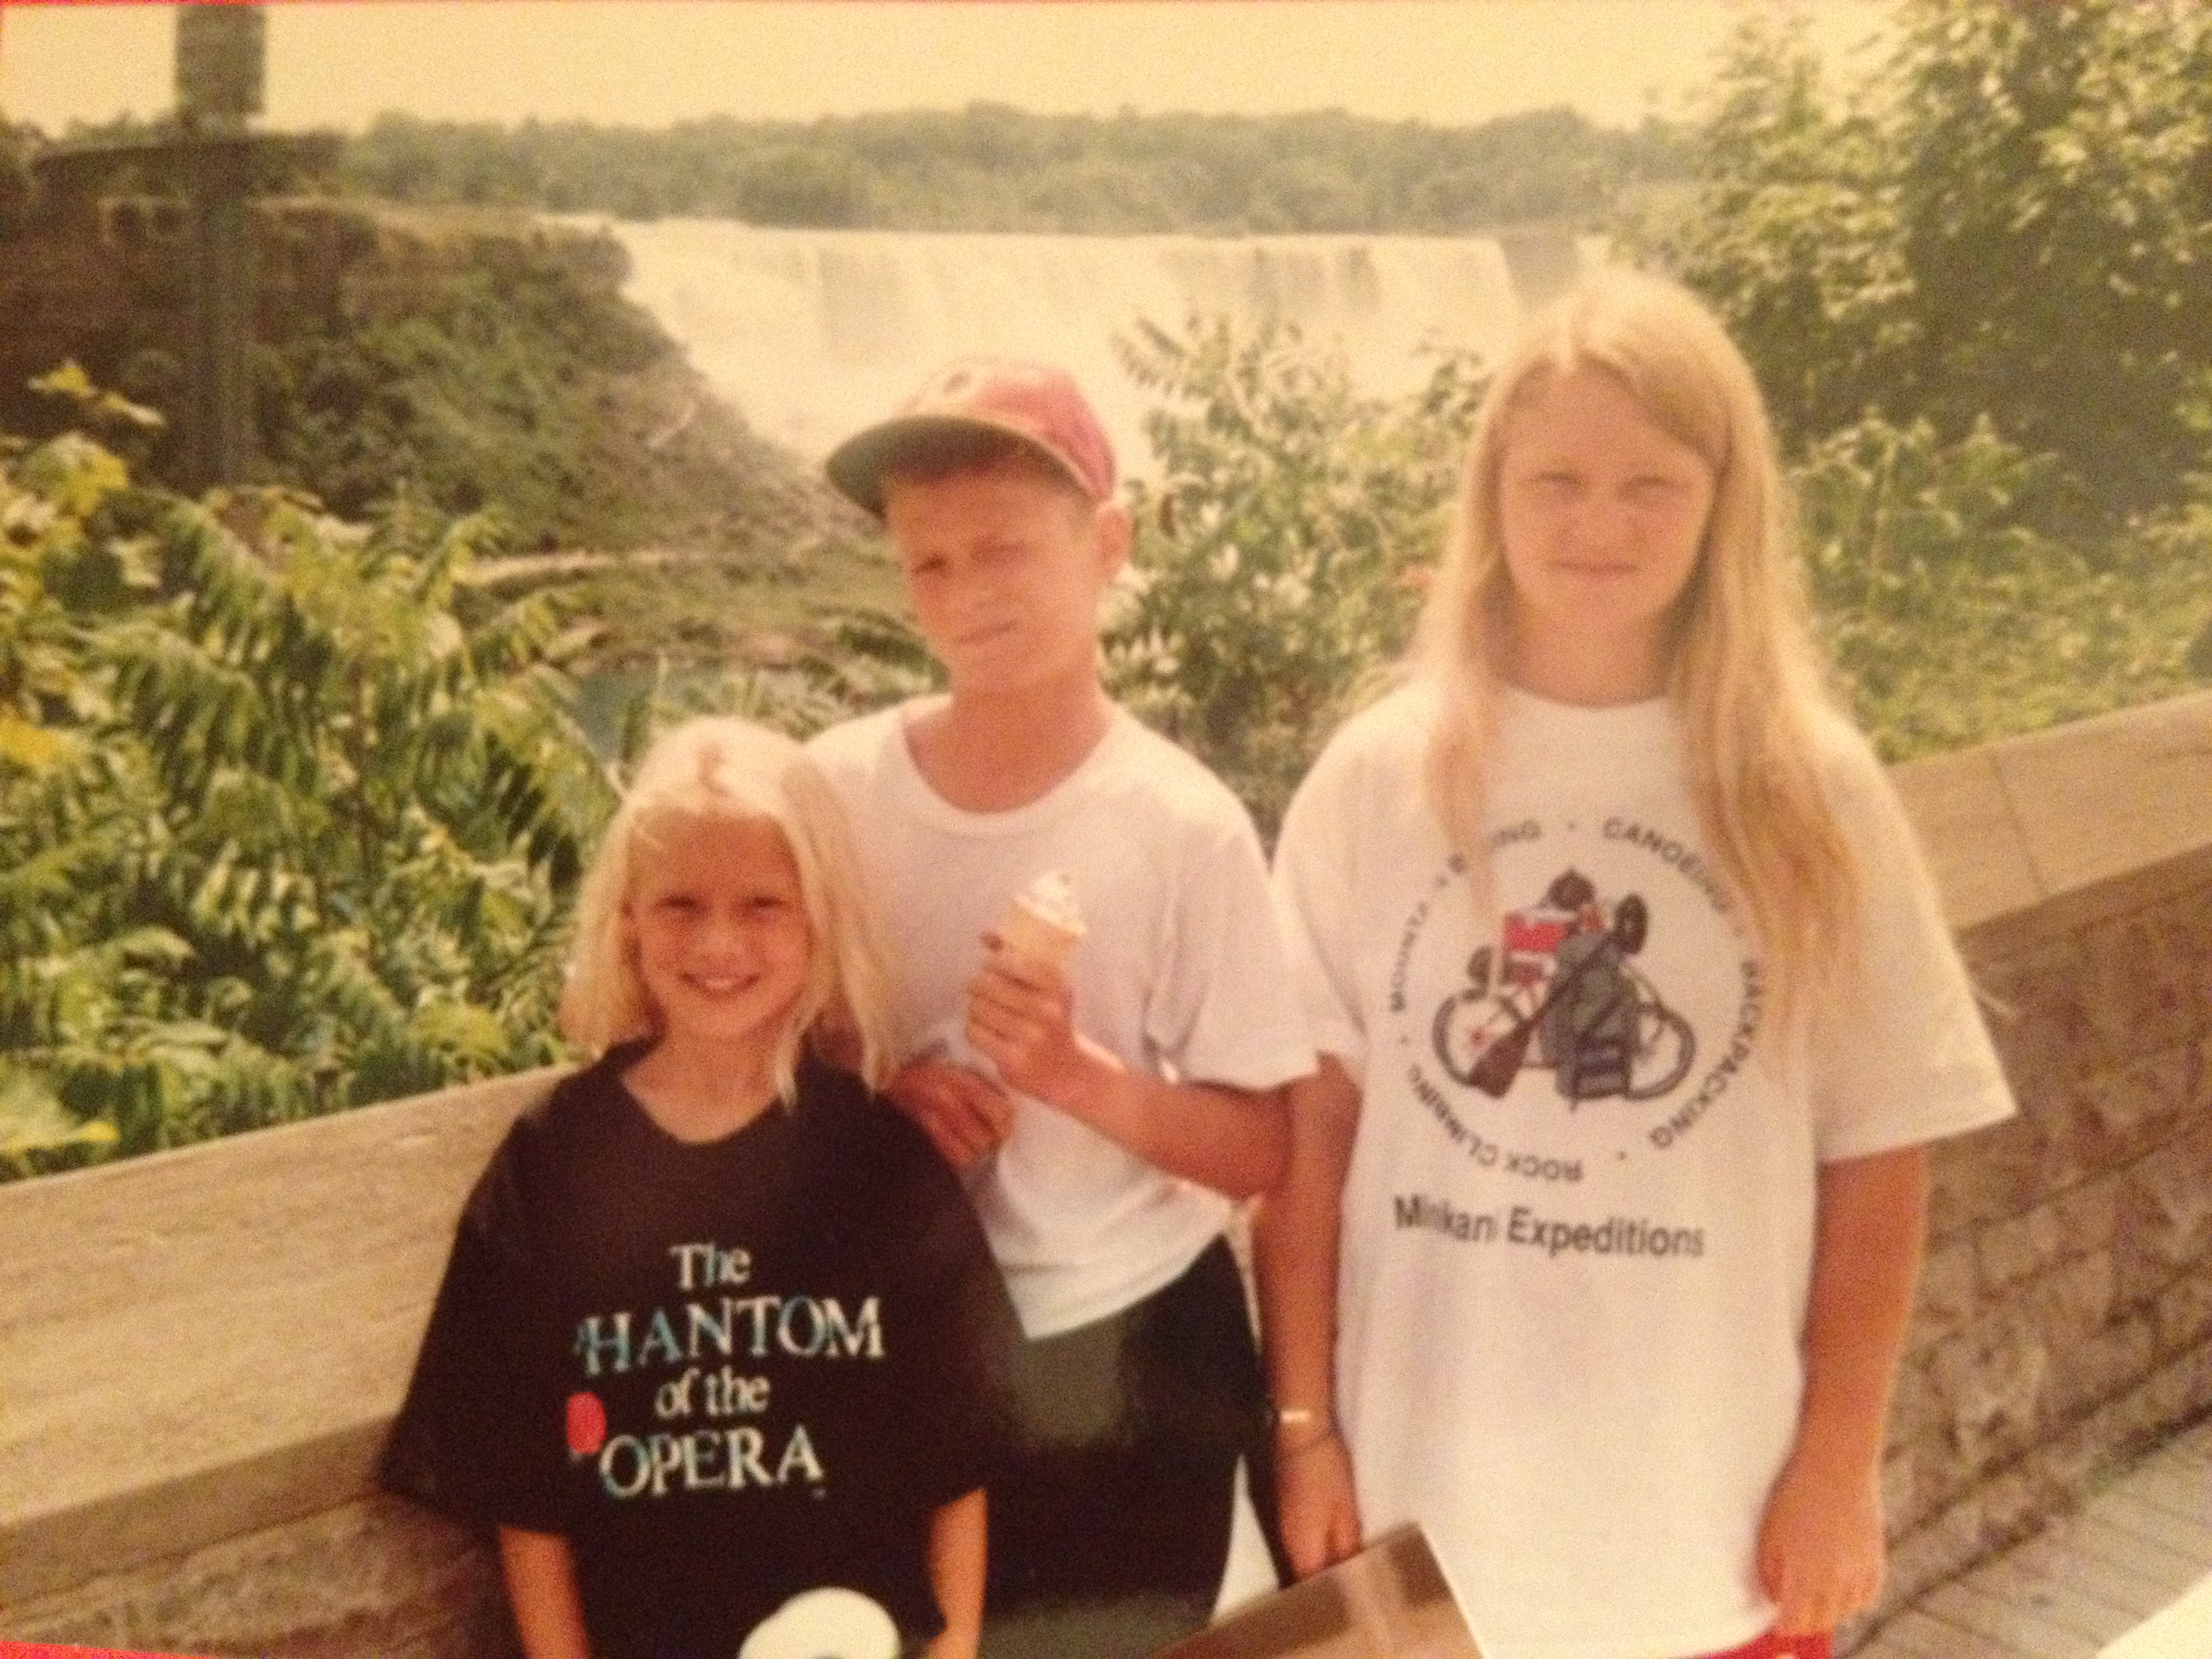 Yup...that's me in the front rockin' a Phantom of the Opera t-shirt.